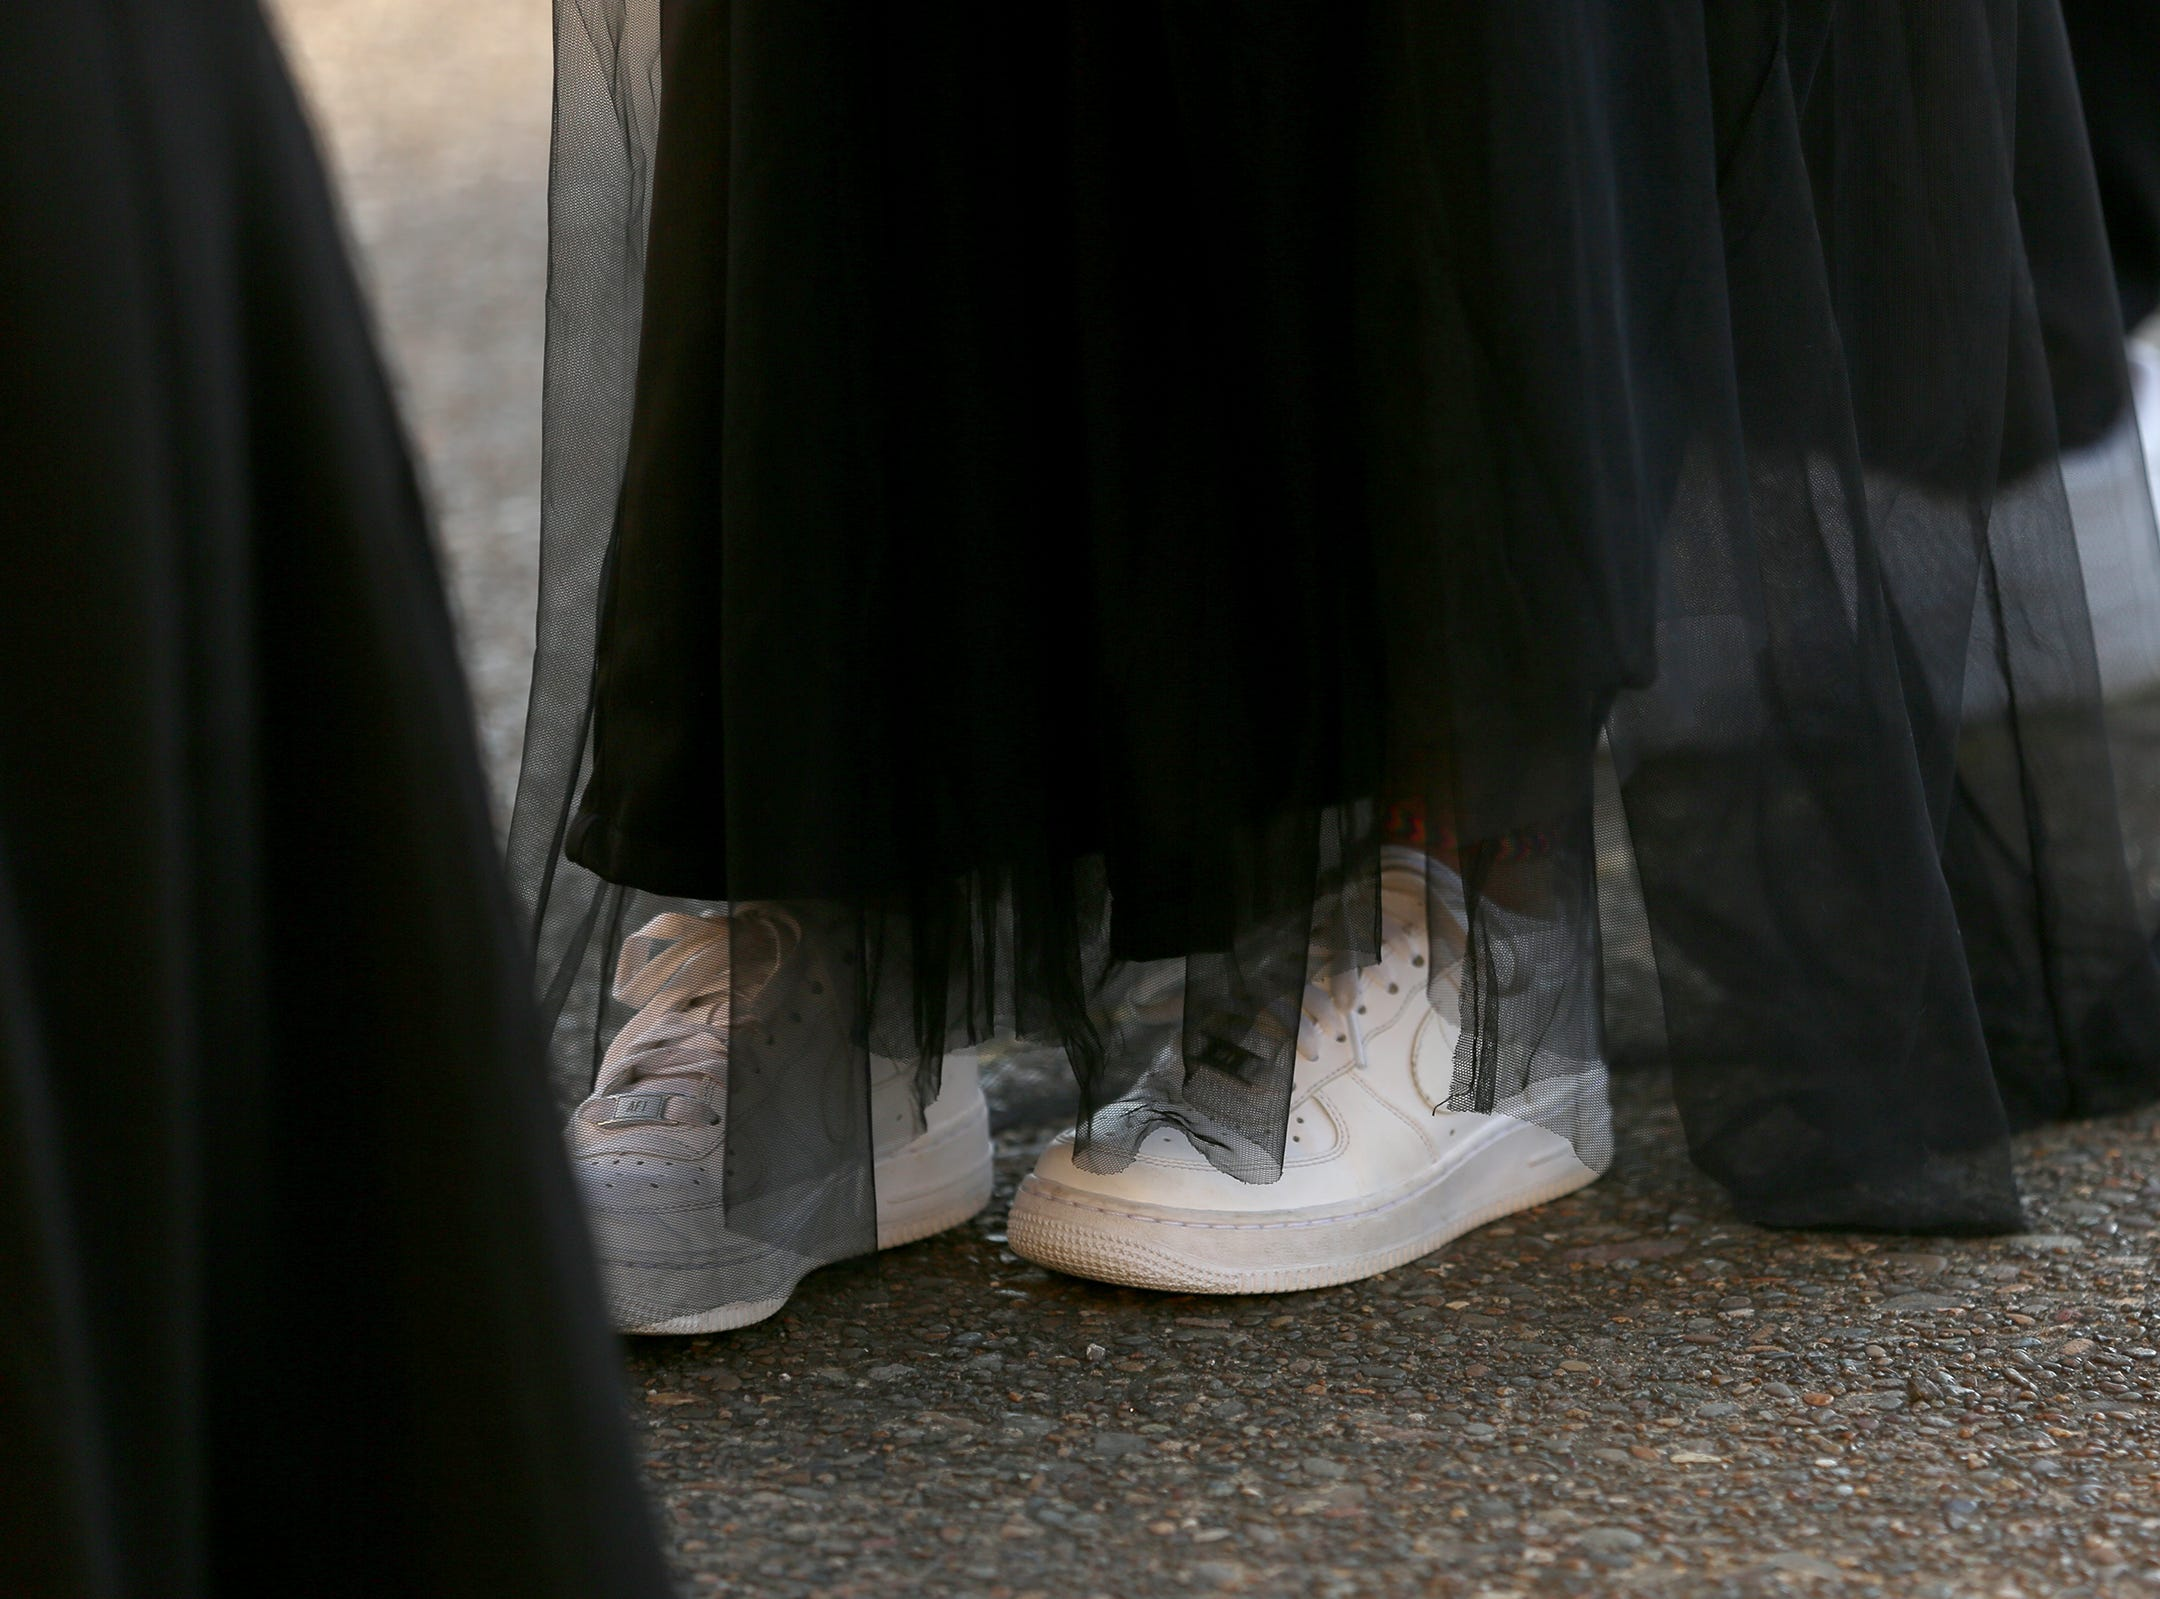 A student wears sneakers under her dress during the Sprague High School prom at Zenith Vineyard in West Salem on May 10, 2019.